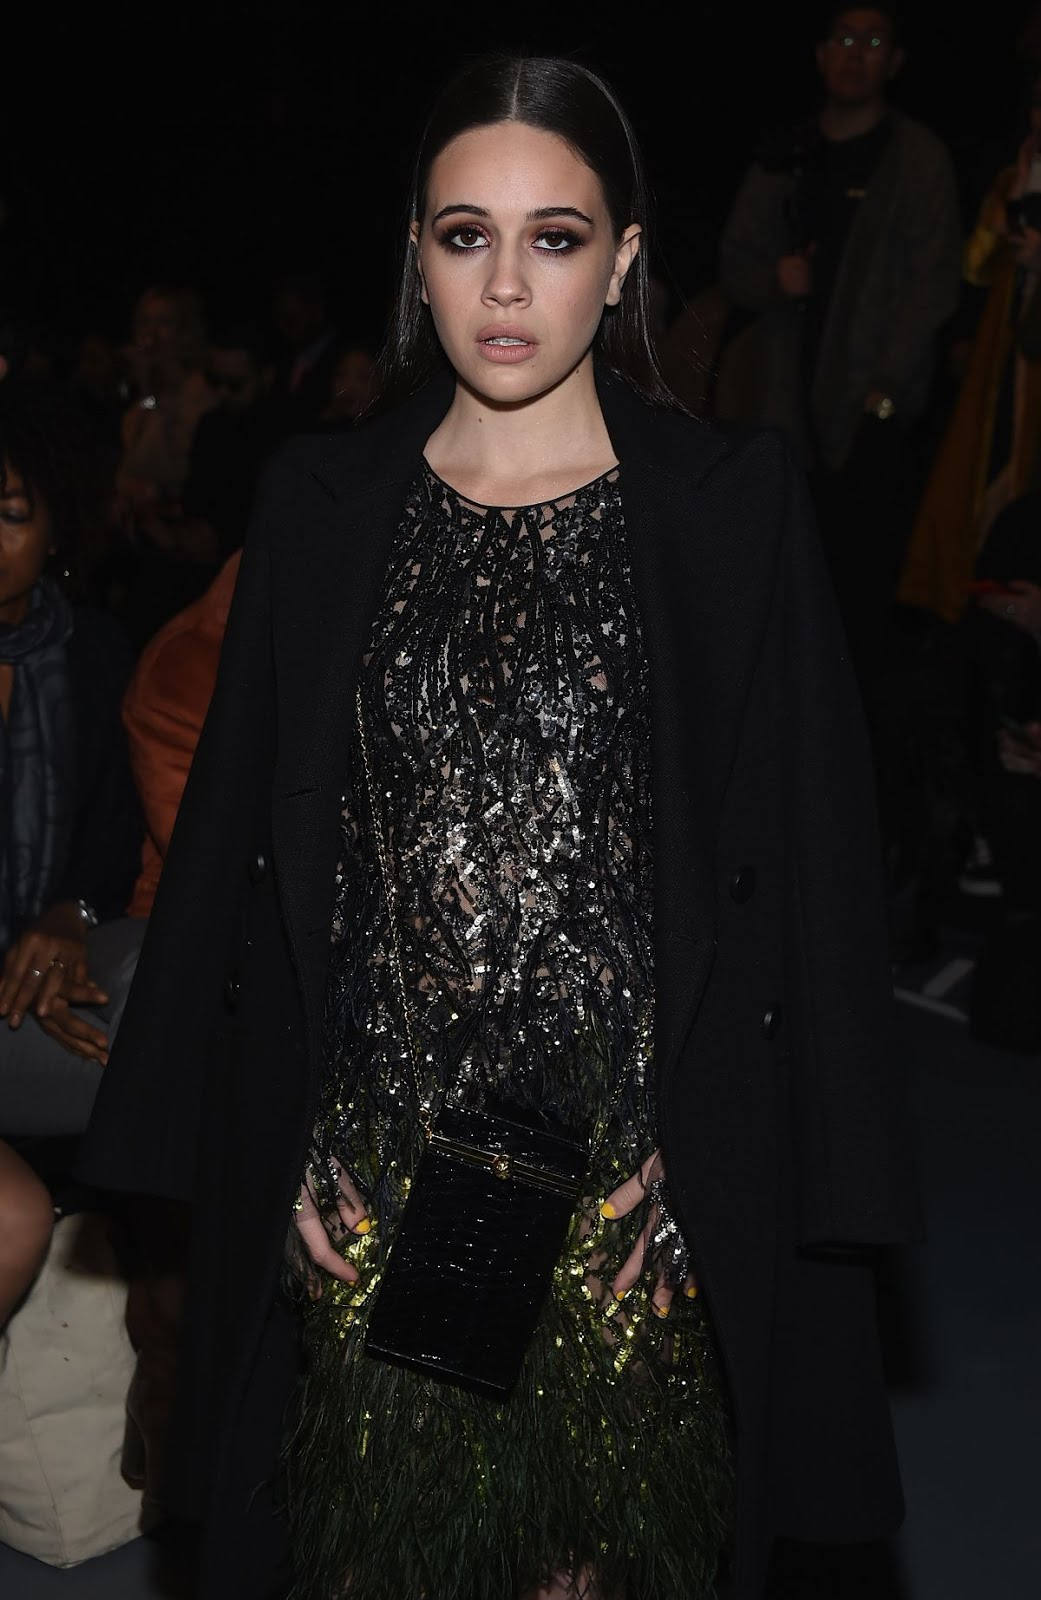 Bea Miller At Pamela Roland Fashion Show At New York Fashion Week 2018 In New York